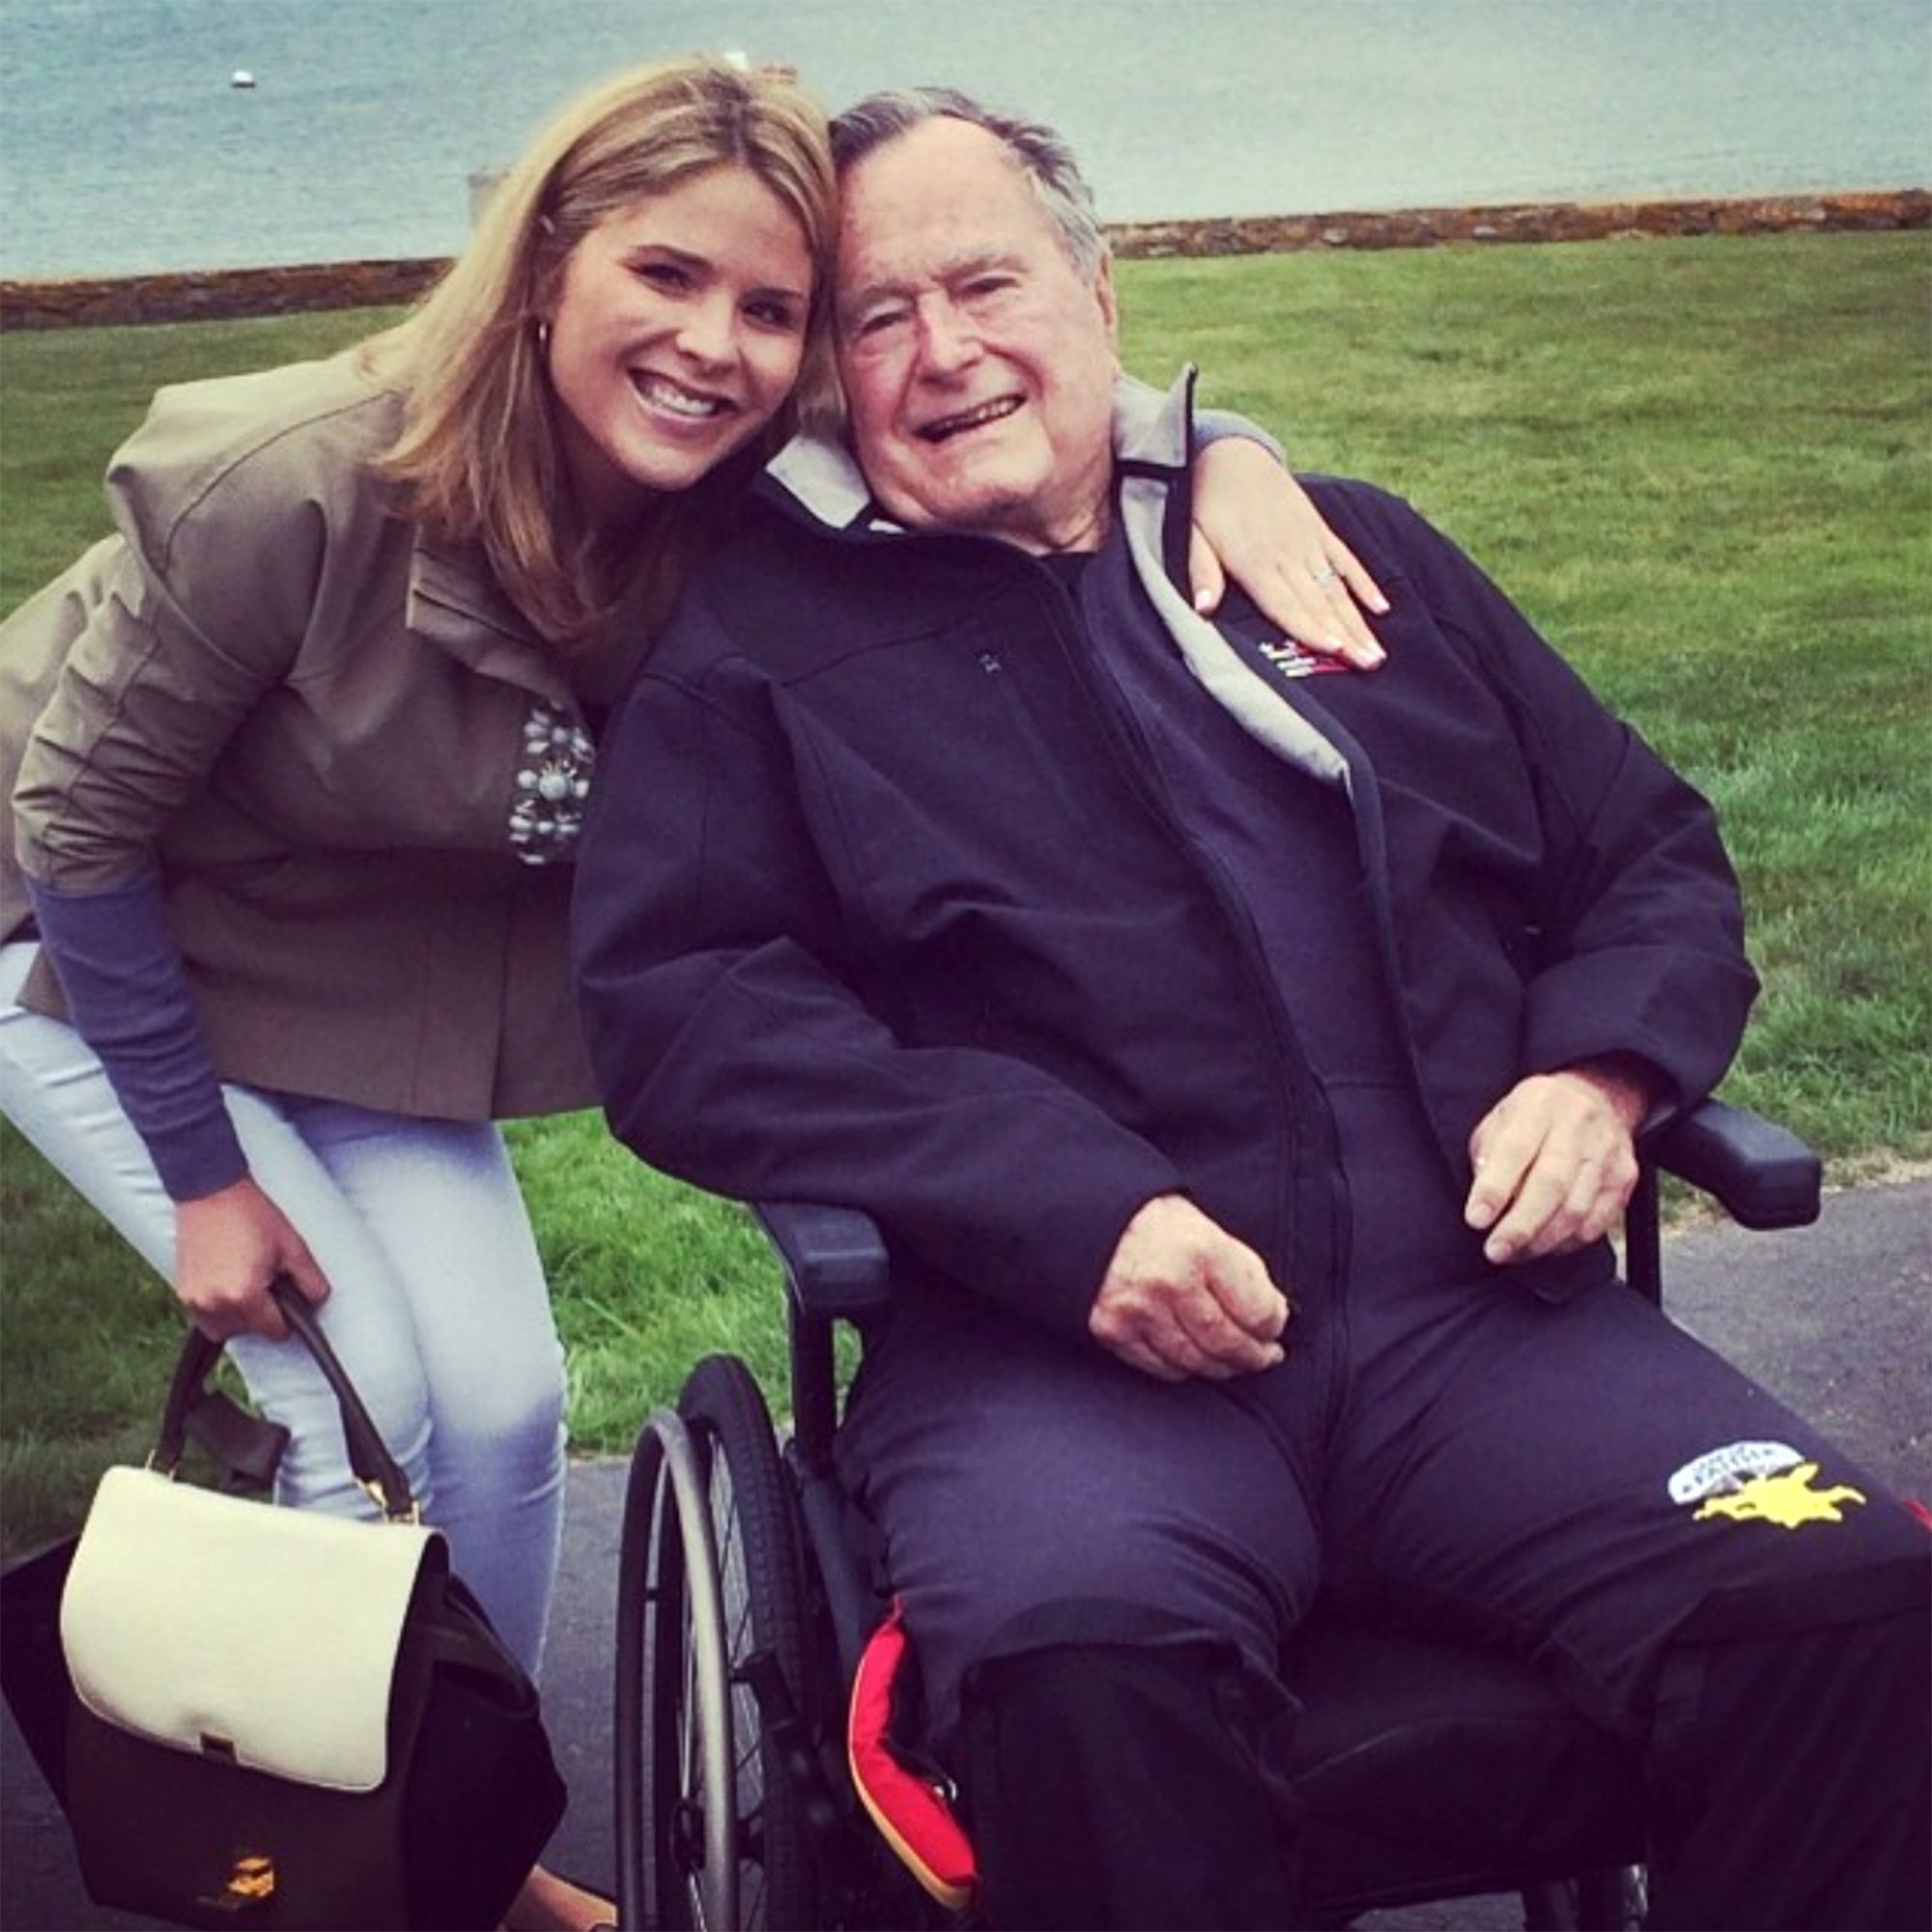 Jenna Bush Hager George H. W. BushCredit: Jenna Bush Hager/Instagram